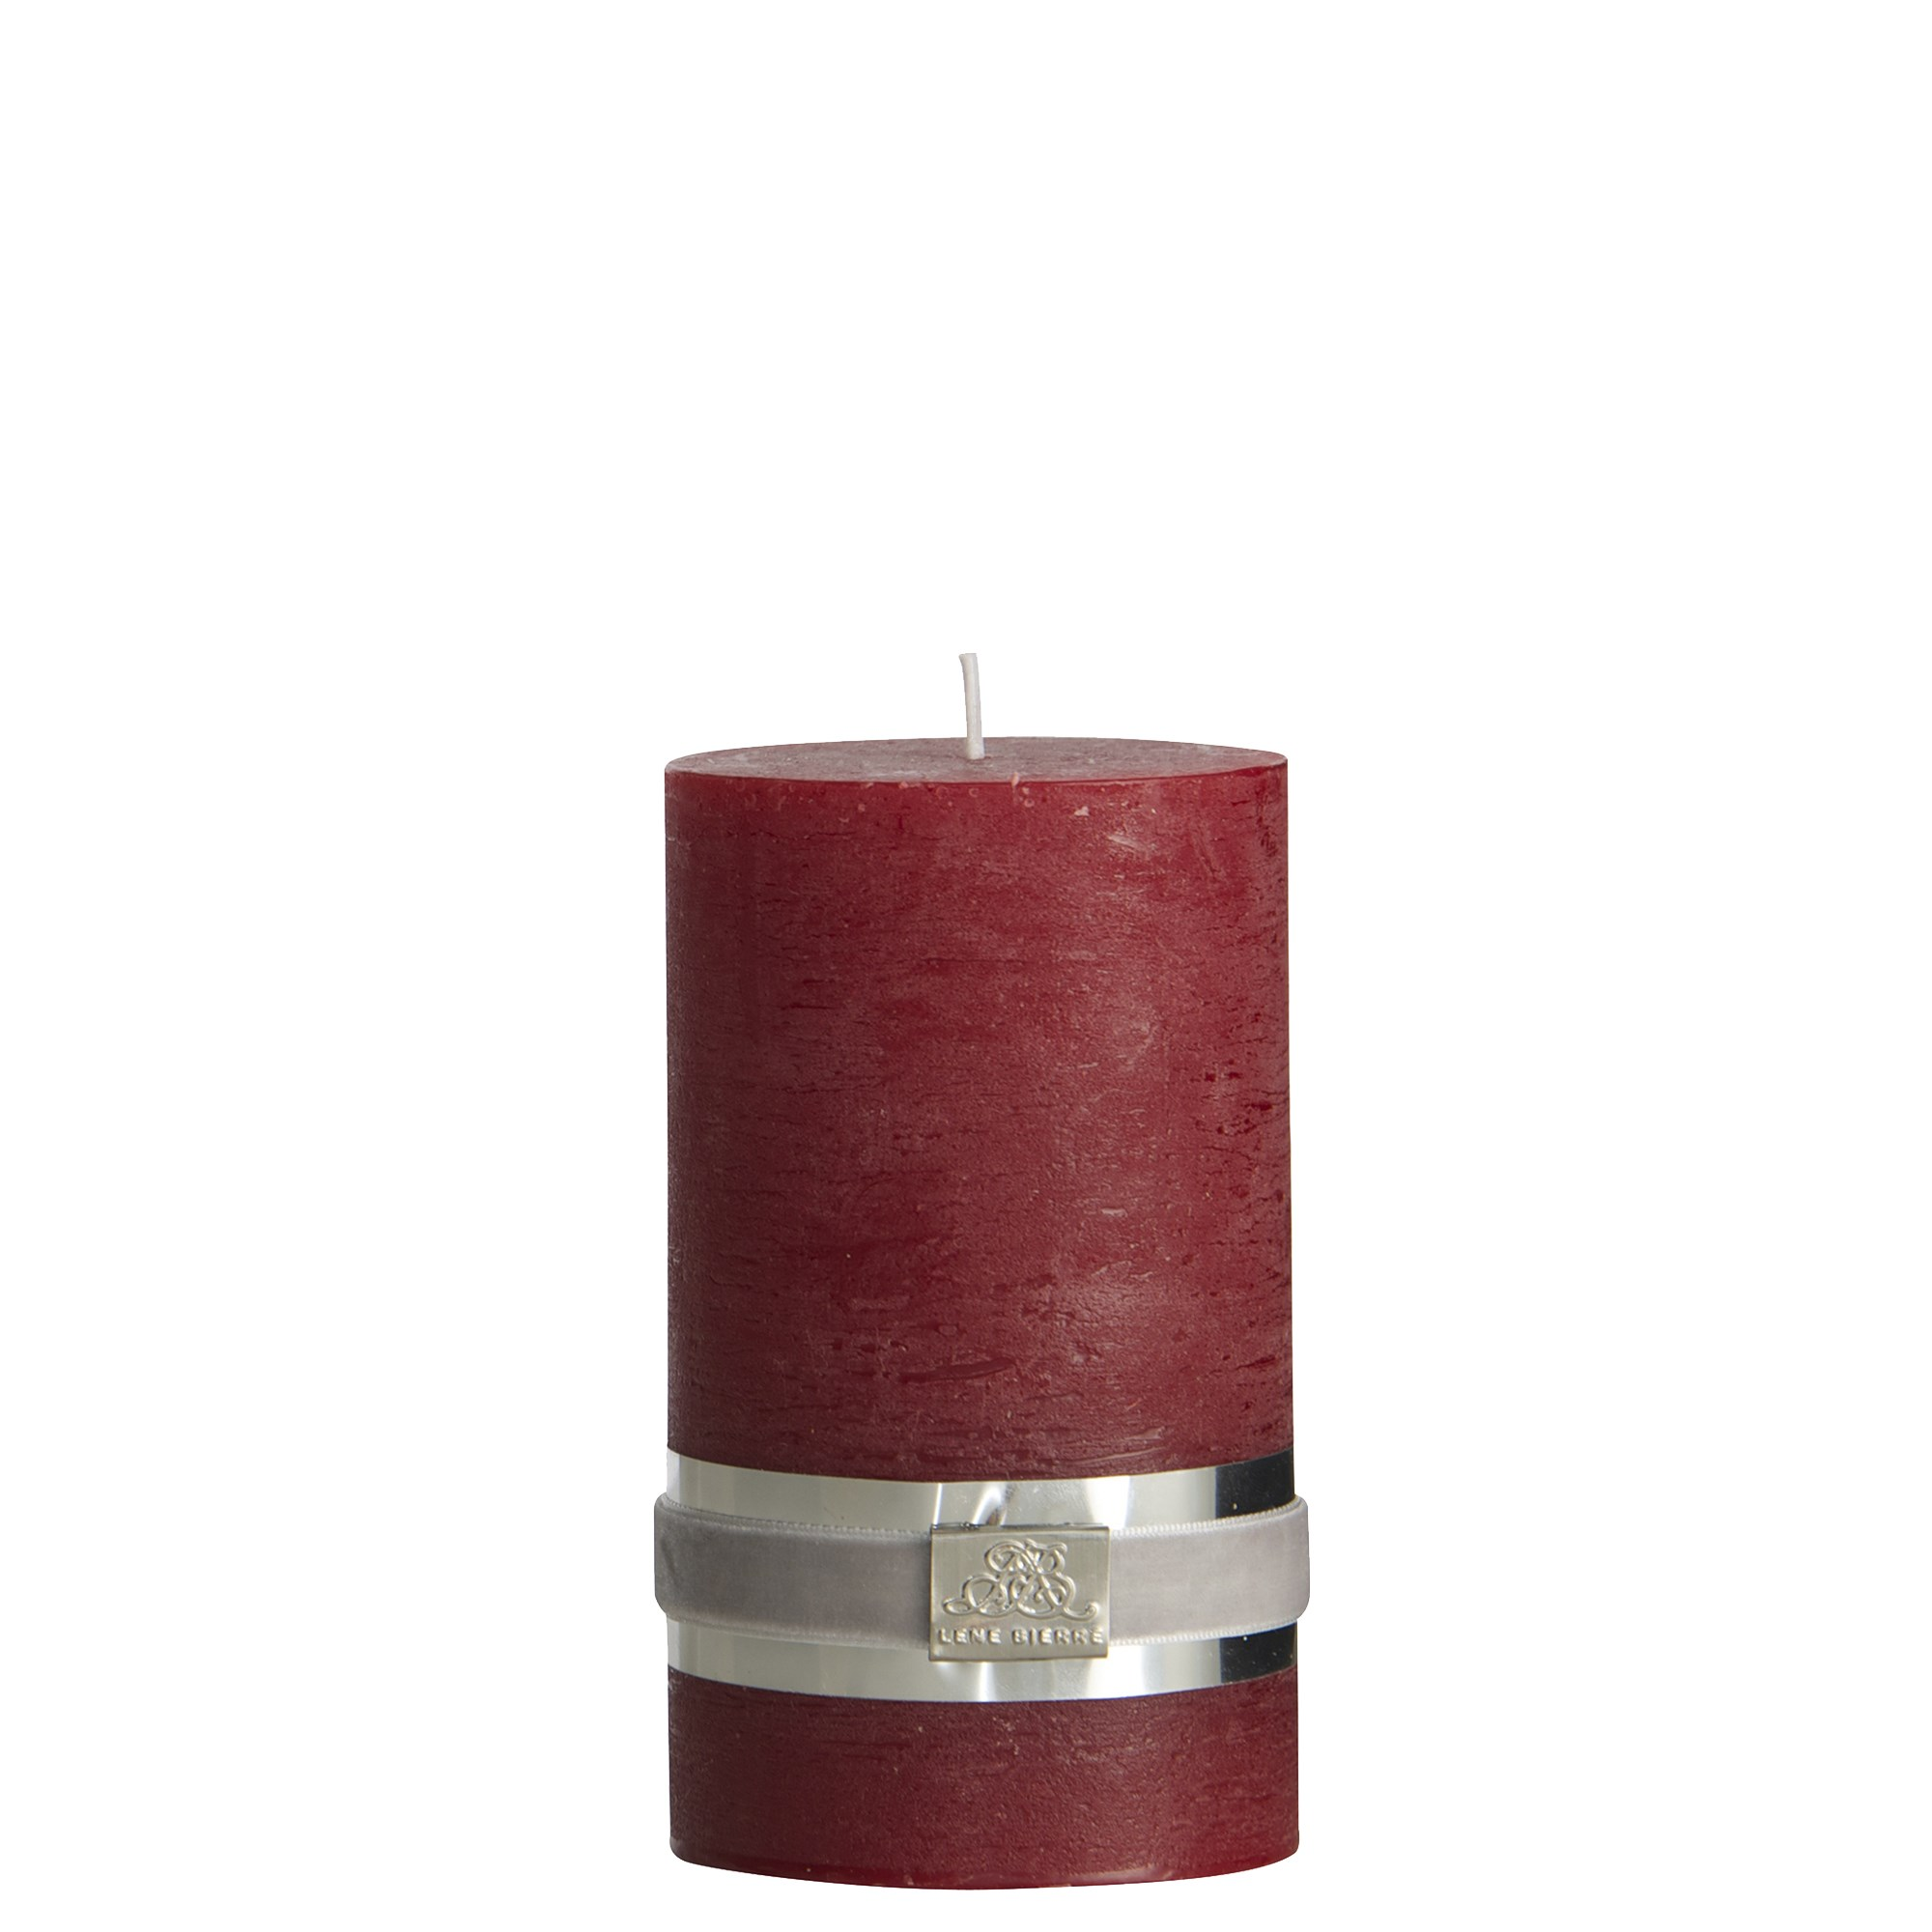 LENE BJERRE - Rustic Pillar Candle 12.5 CM, Dark Red